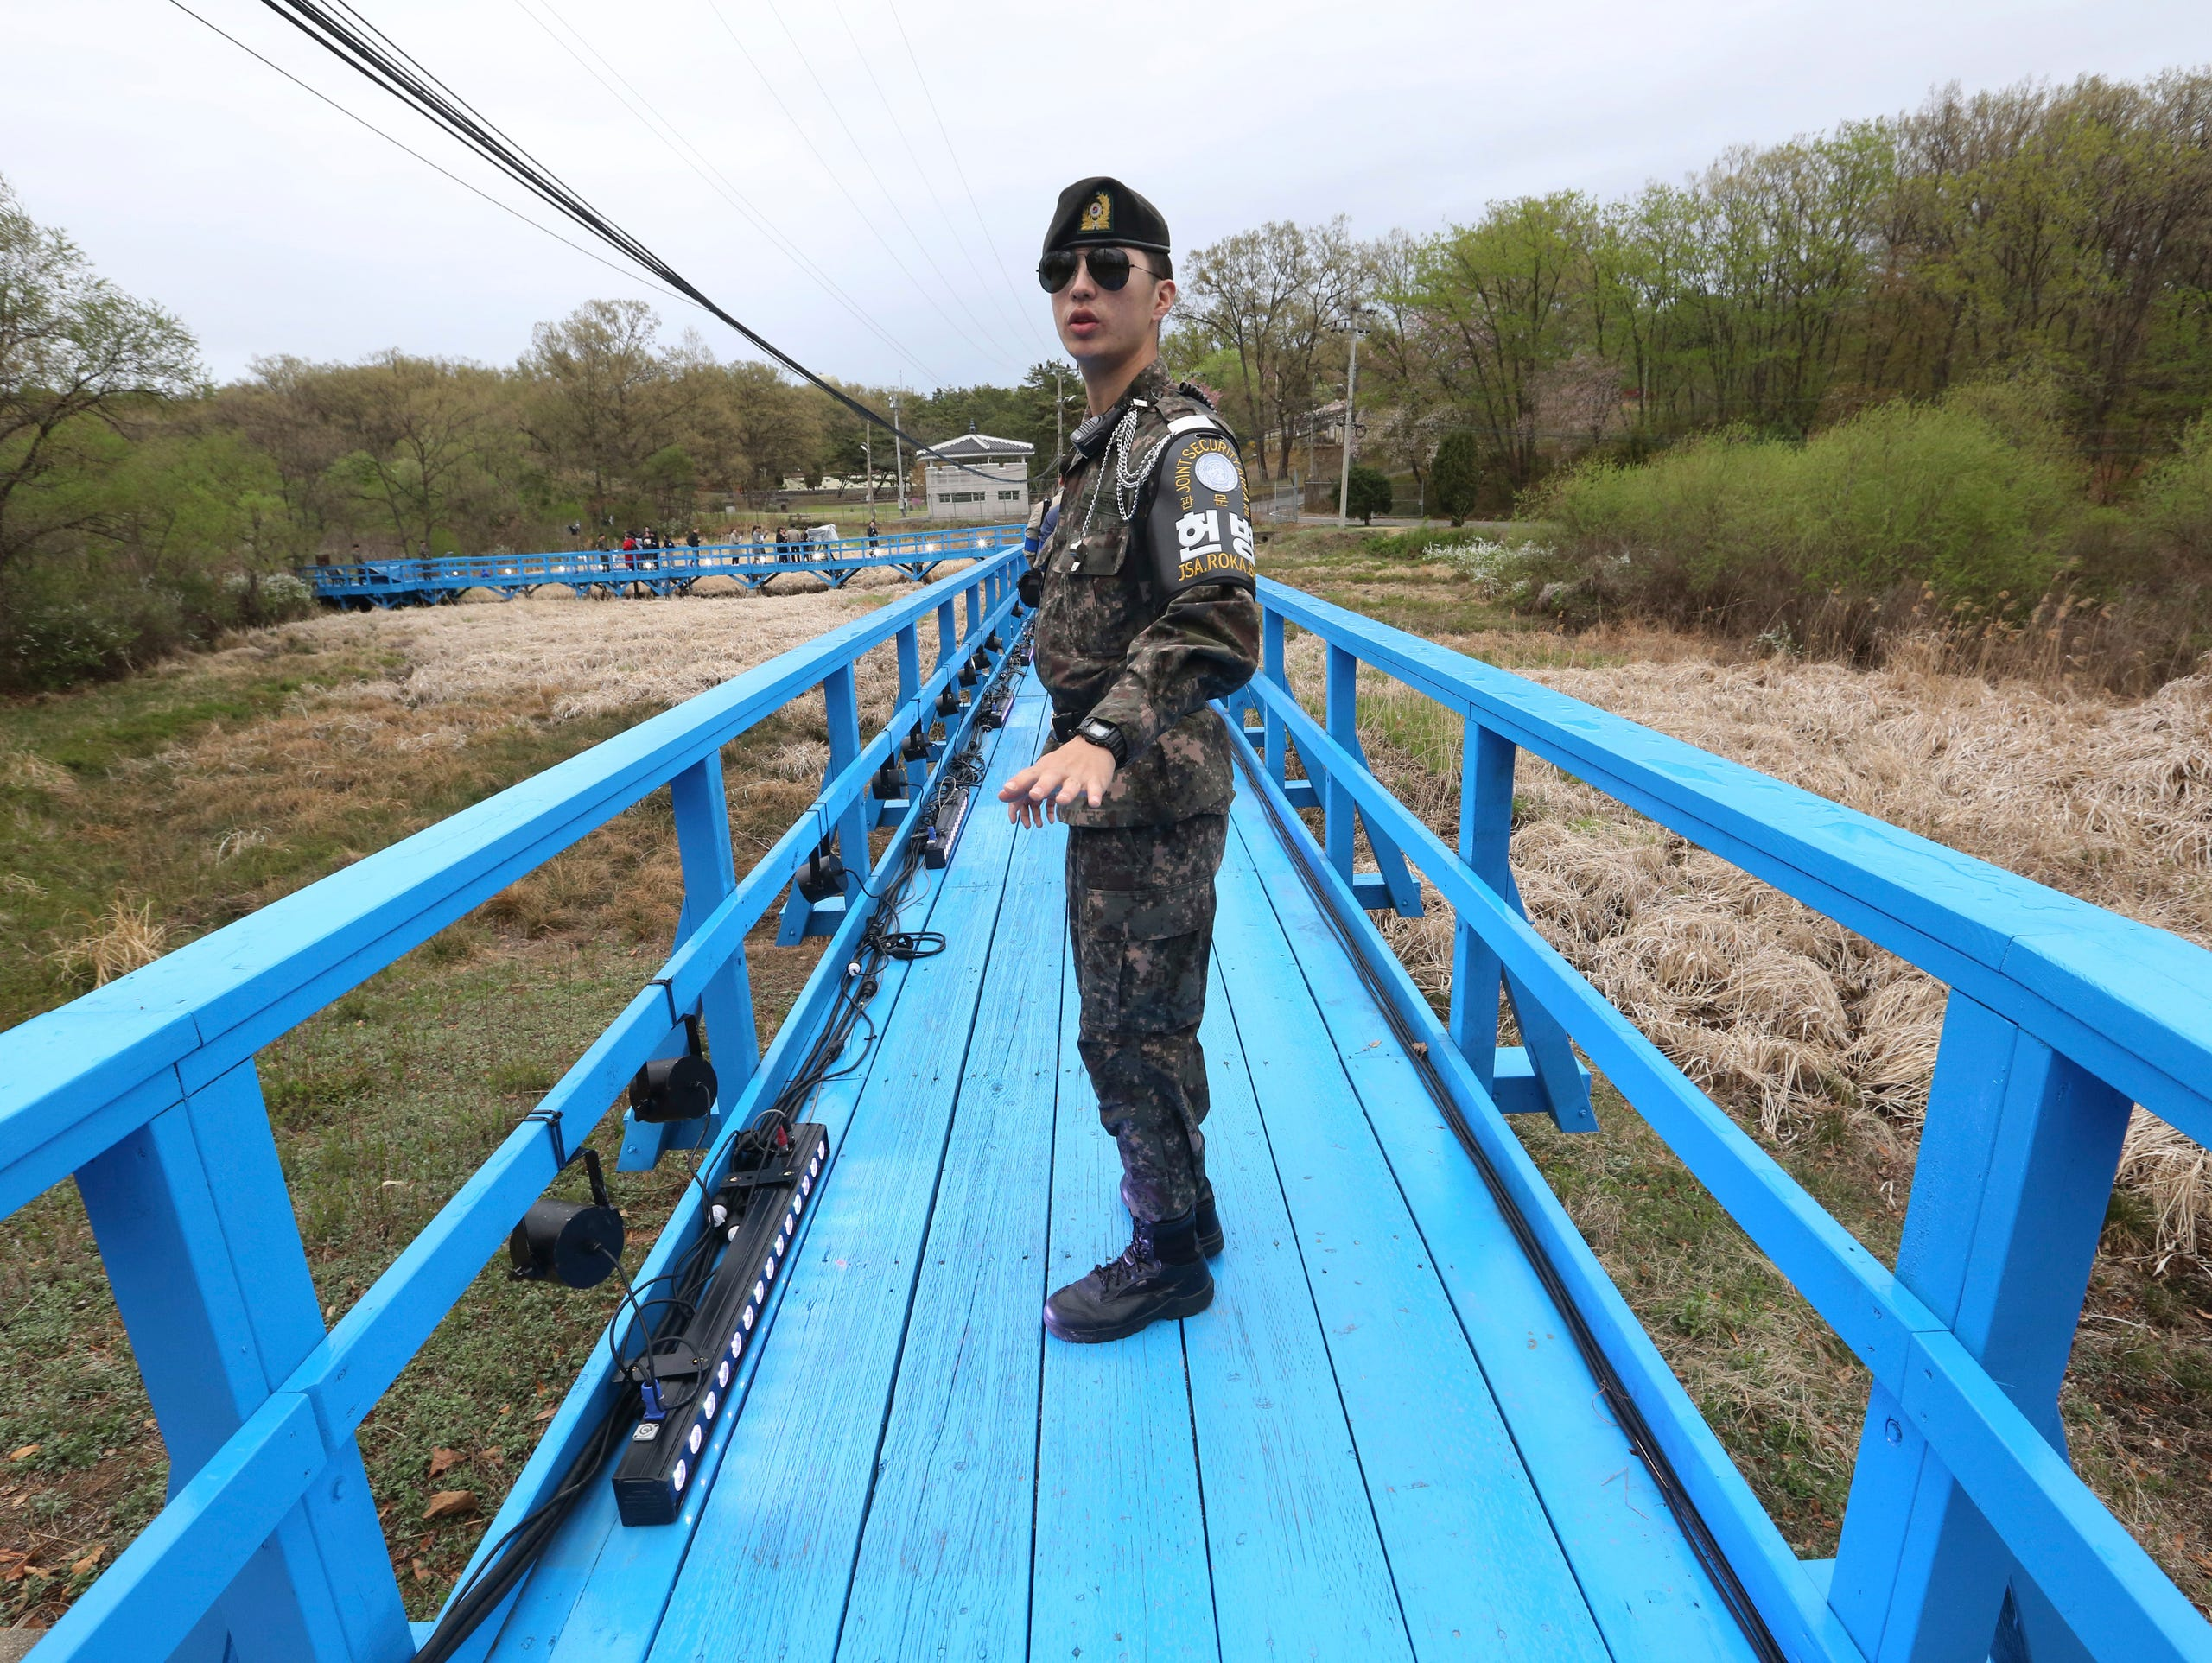 The 160 Mile Long Demilitarized Zone Known As Dmz Is Located